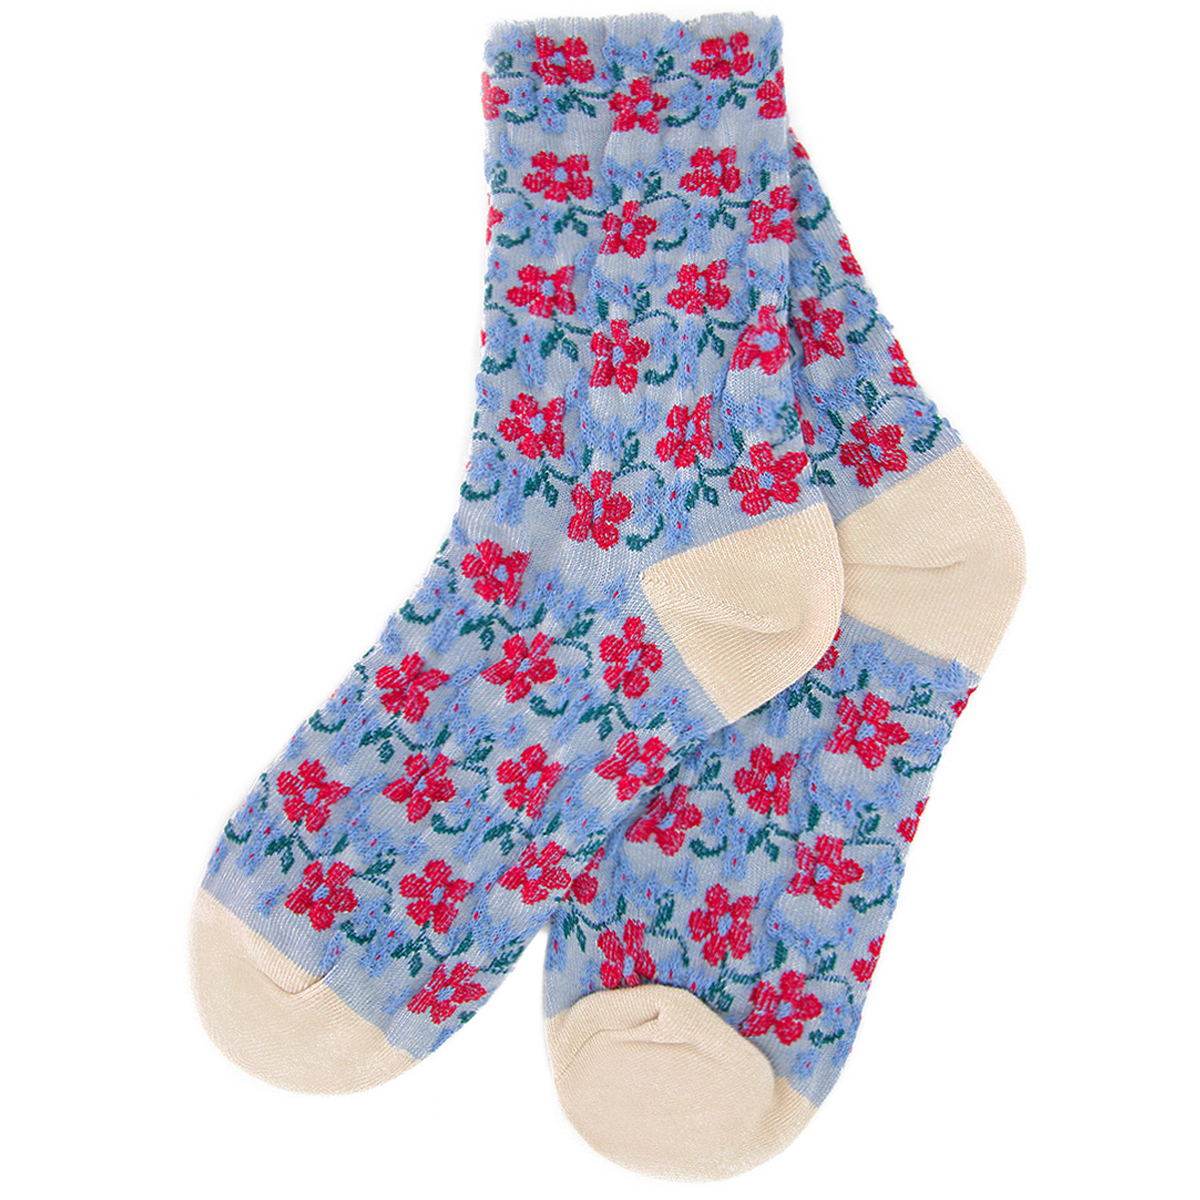 Blue and red flower socks by Emin and Paul